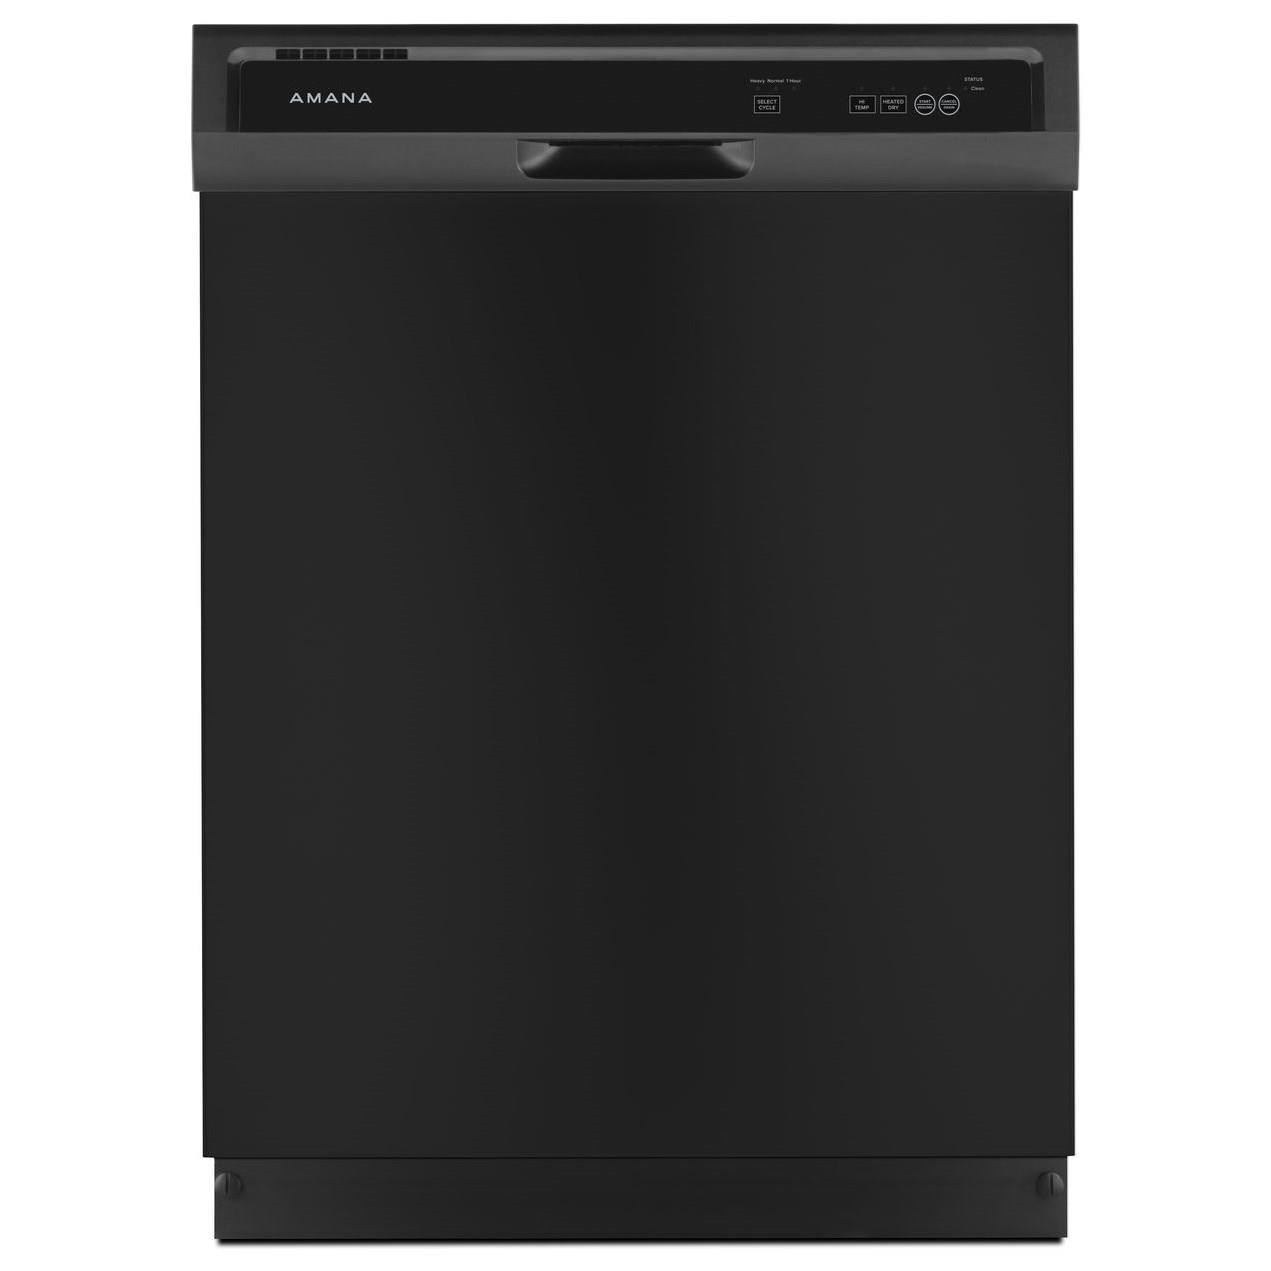 Built-In Dishwashers Dishwasher with Triple Filter Wash System by Amana at Wilcox Furniture